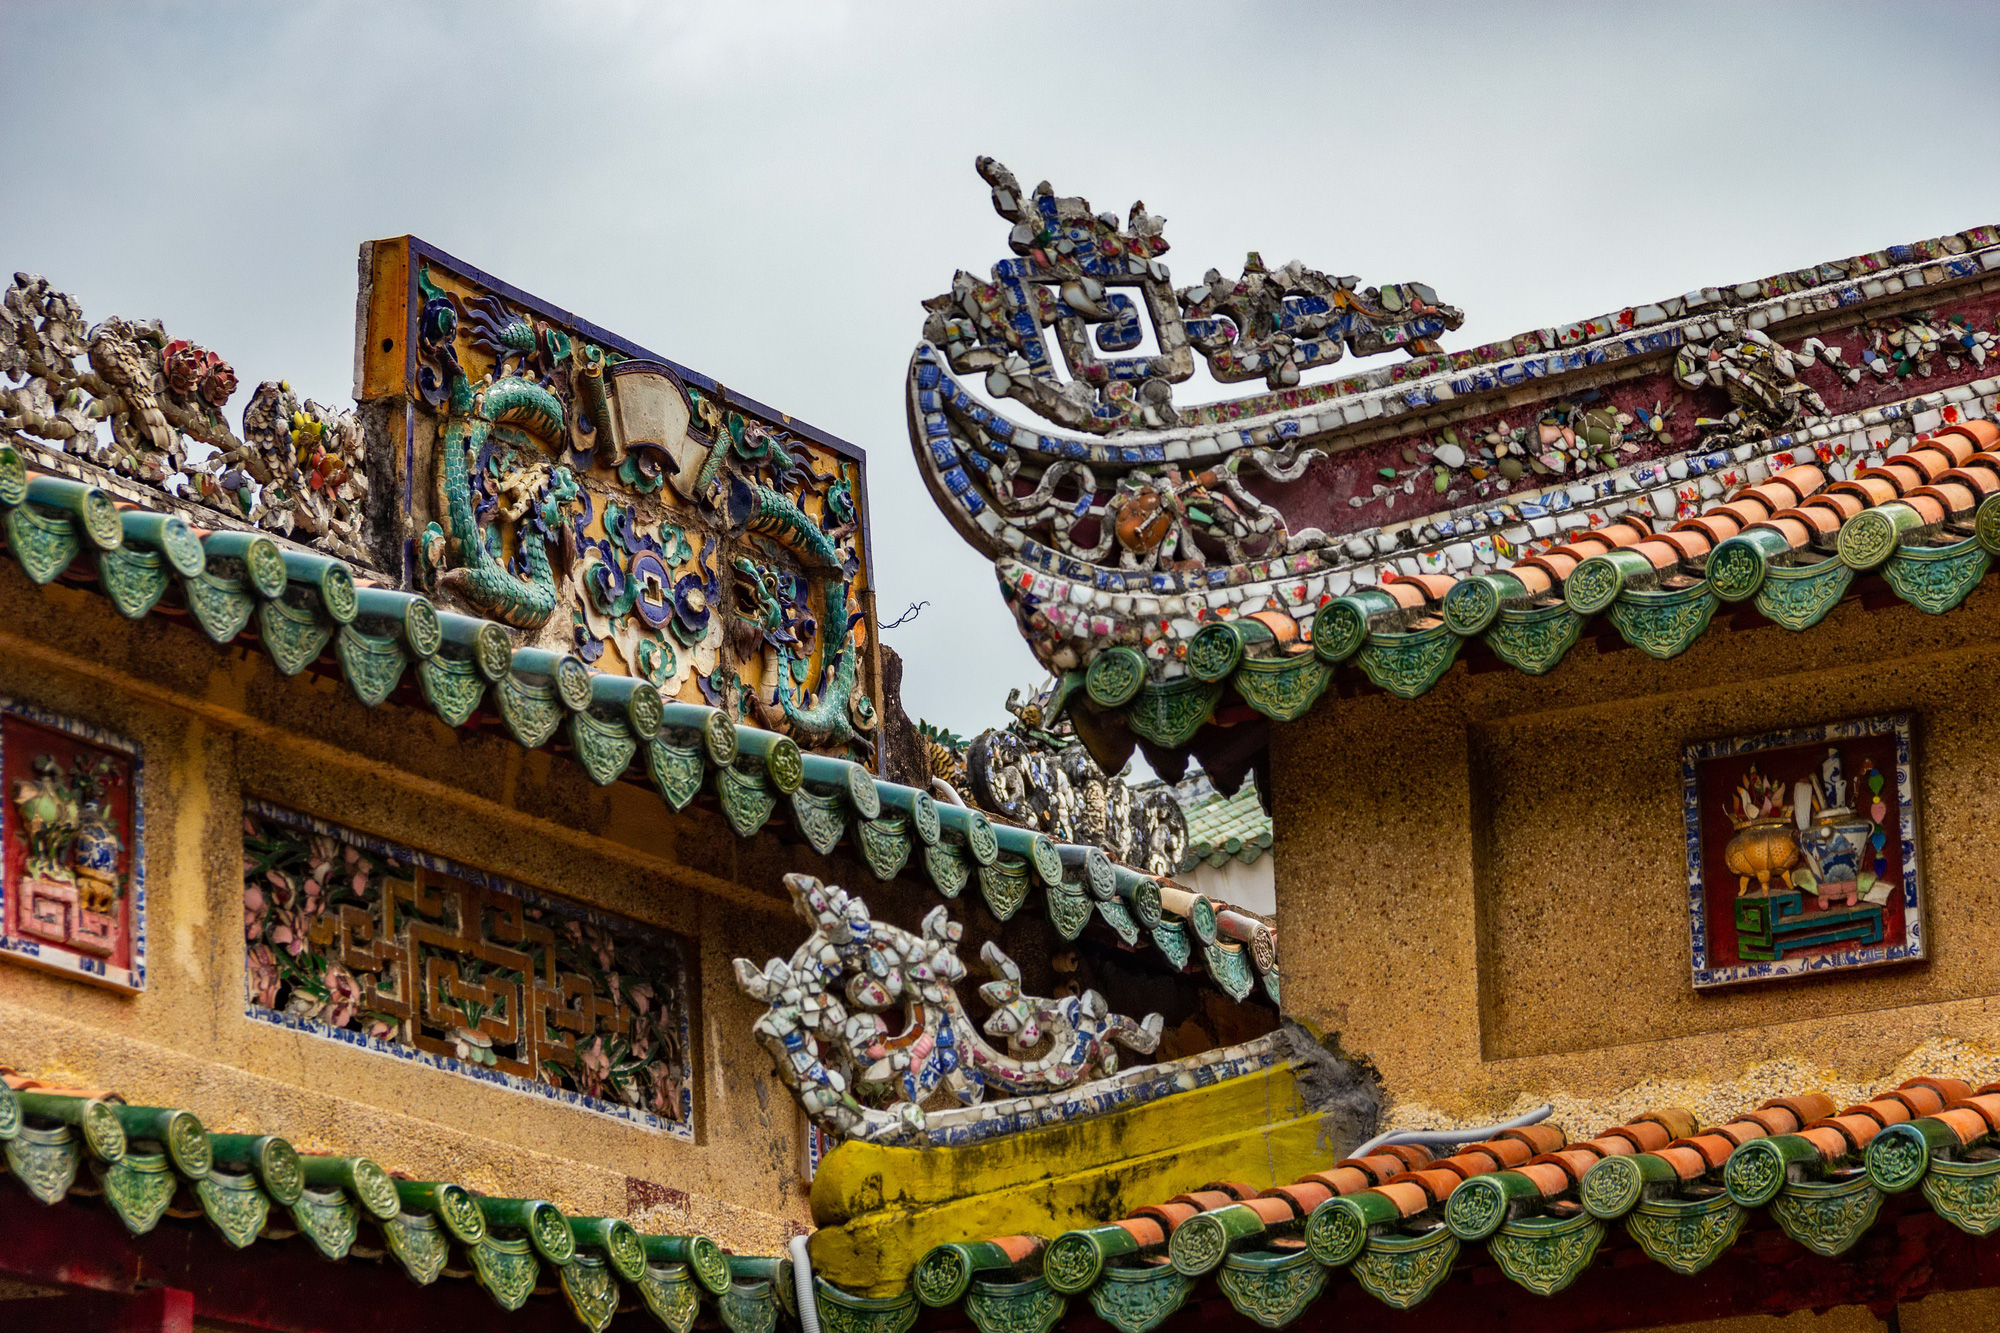 Details on the roof of the Tomb of Le Van Duyet, a major Vietnamese general in the Nguyen Dynasty, located in Binh Thanh District, Ho Chi Minh City, Vietnam, are seen in the photo. Photo: Tran Hong Ngoc / Tuoi Tre